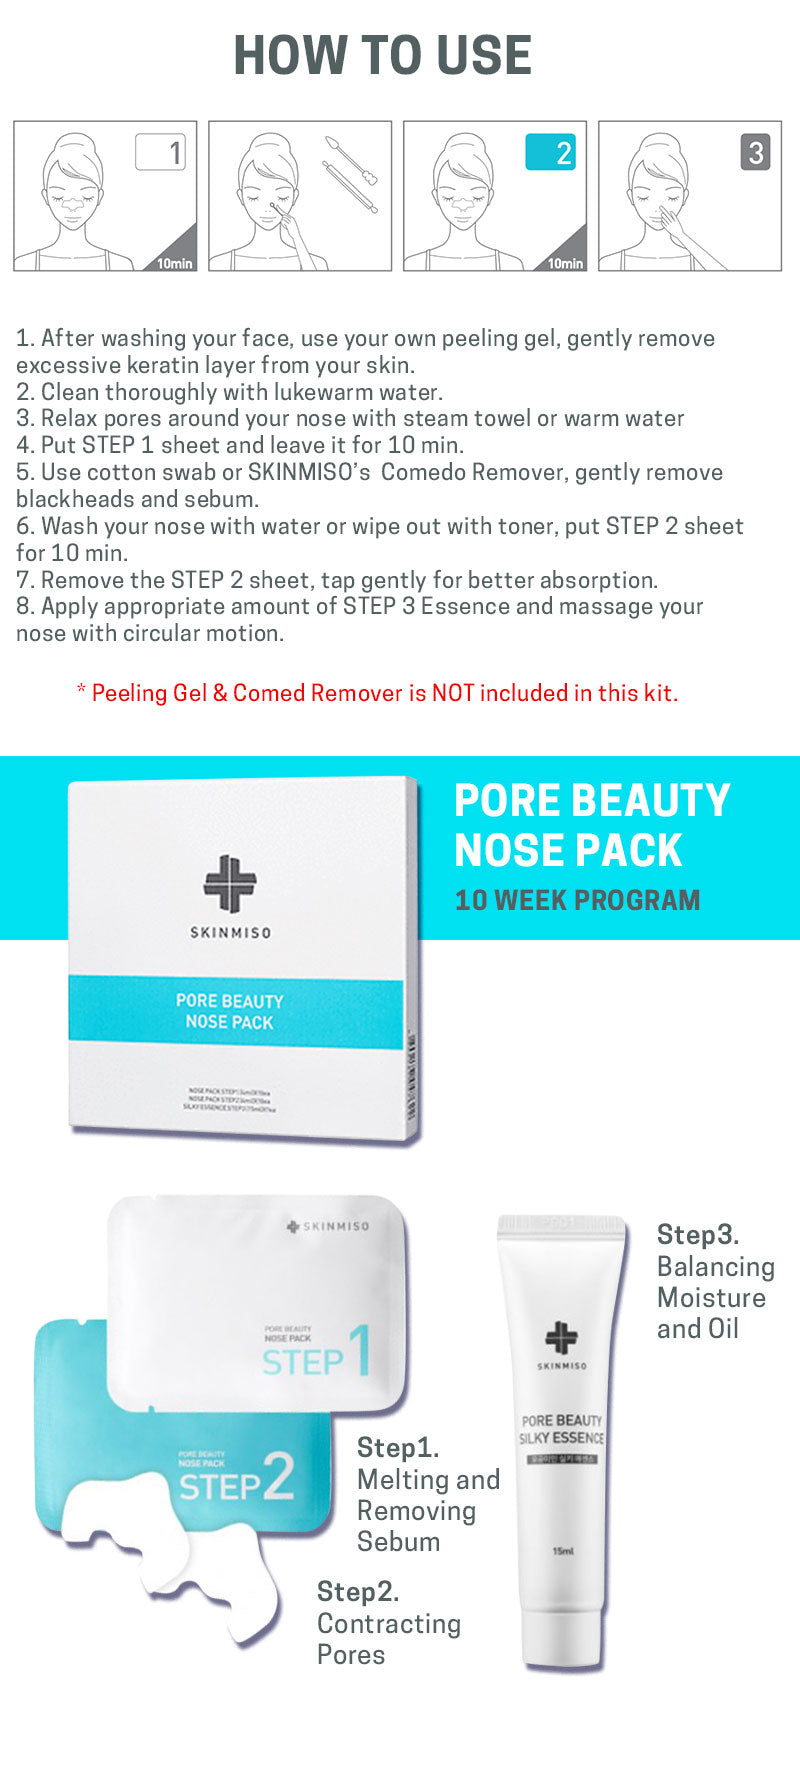 pore-beauty-nose-pack3